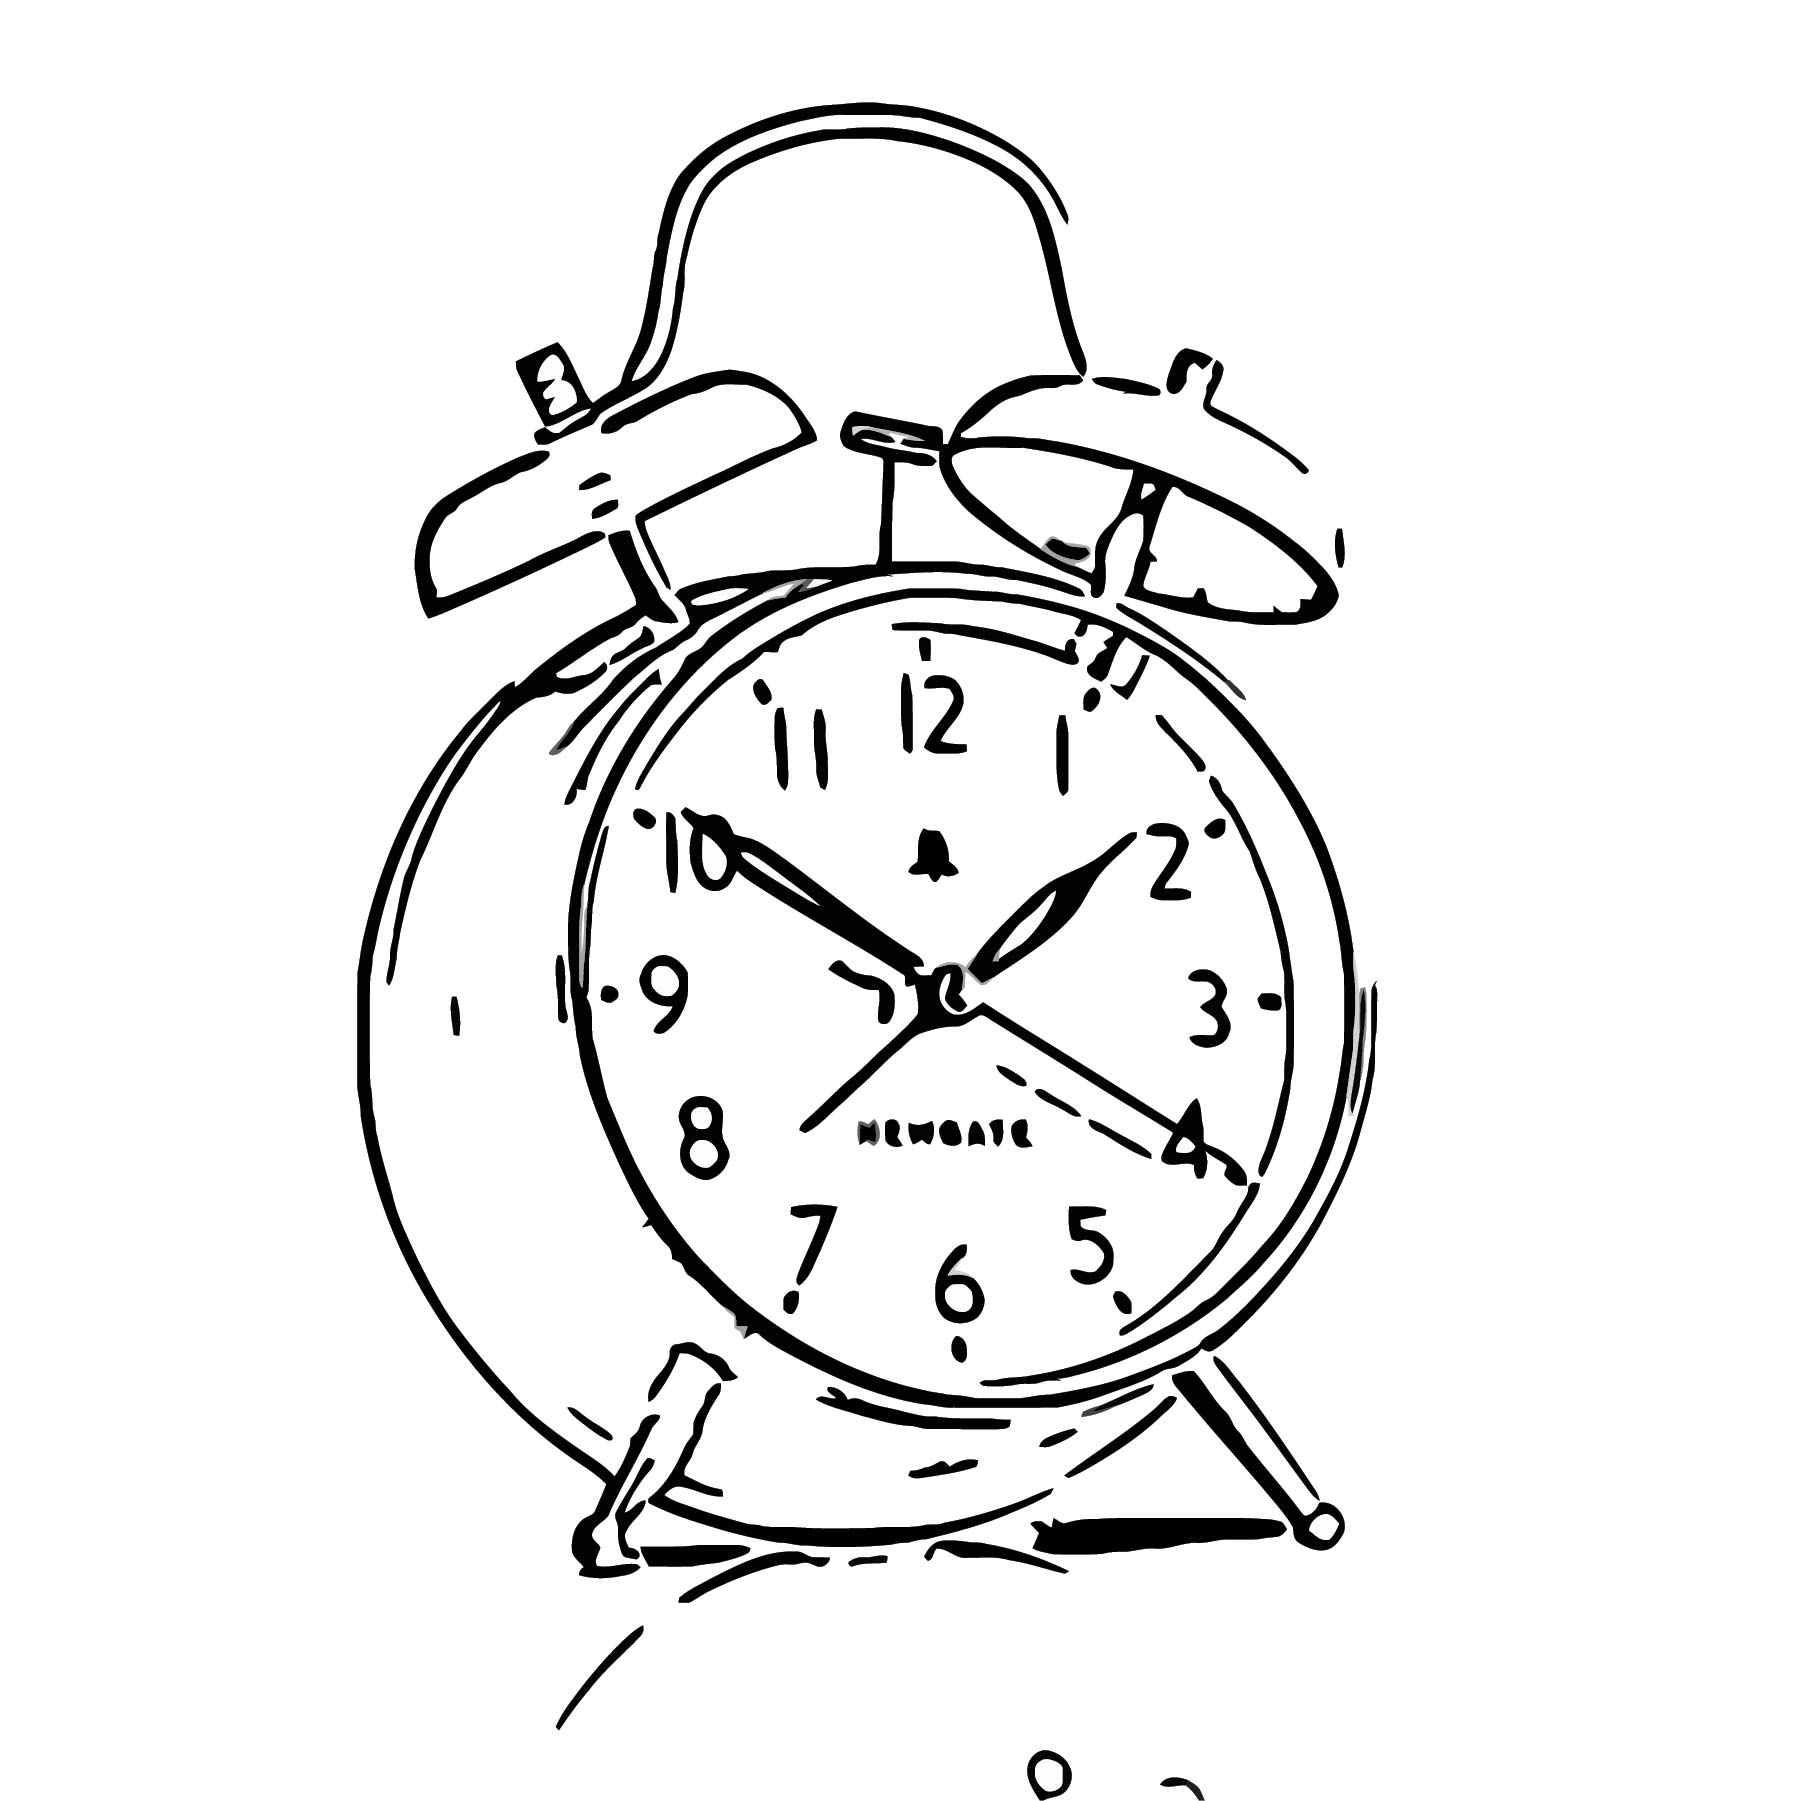 The New Covent Garden Alarm Clock Free Printable Sl Cartoonized Free Printable Coloring Page